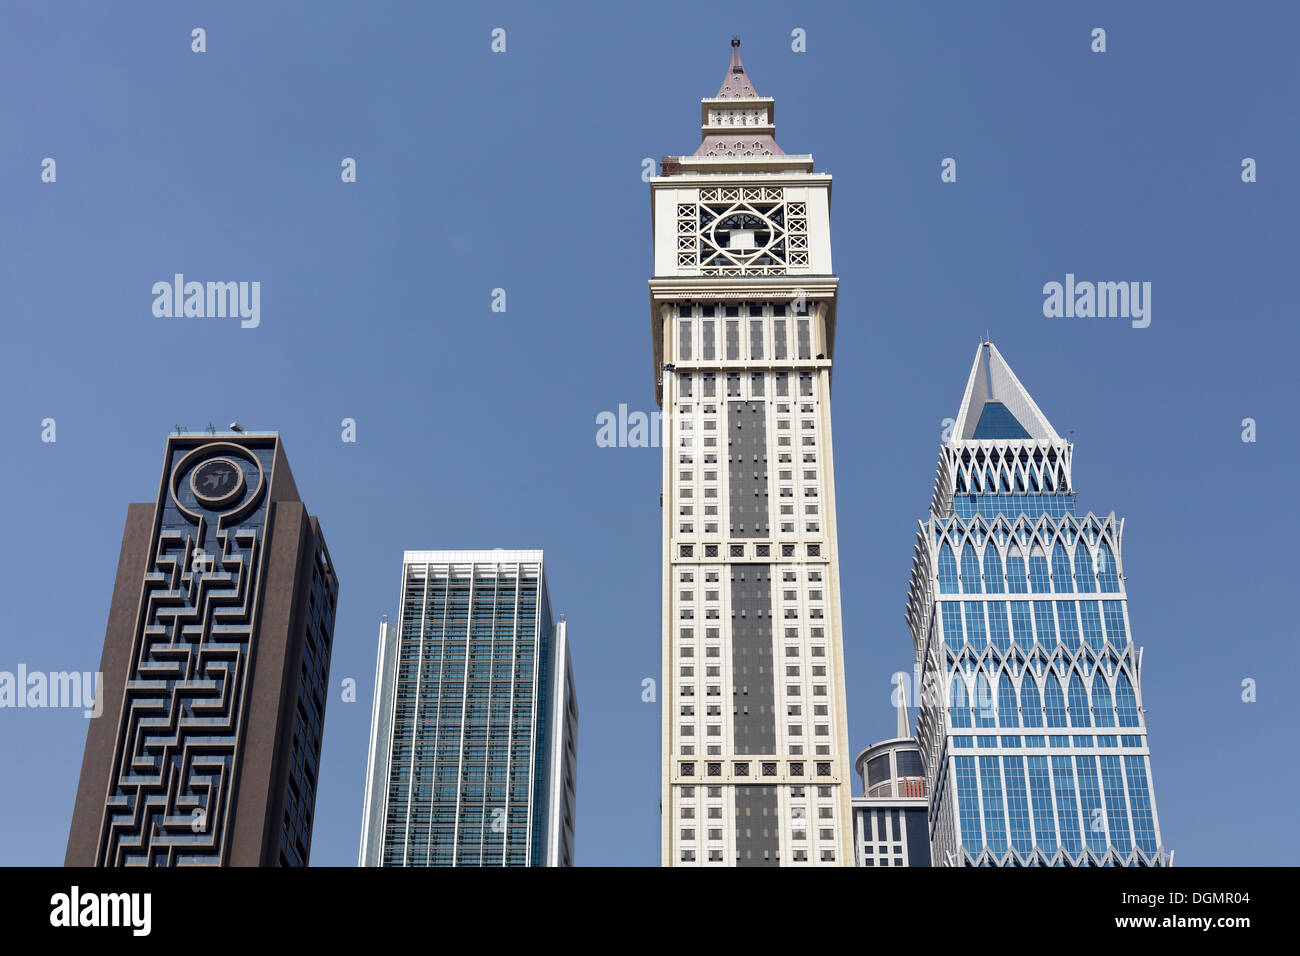 Skyscrapers built in differing architectural styles, Dubai International Financial Centre, DIFC, Dubai, United Arab Emirates - Stock Image